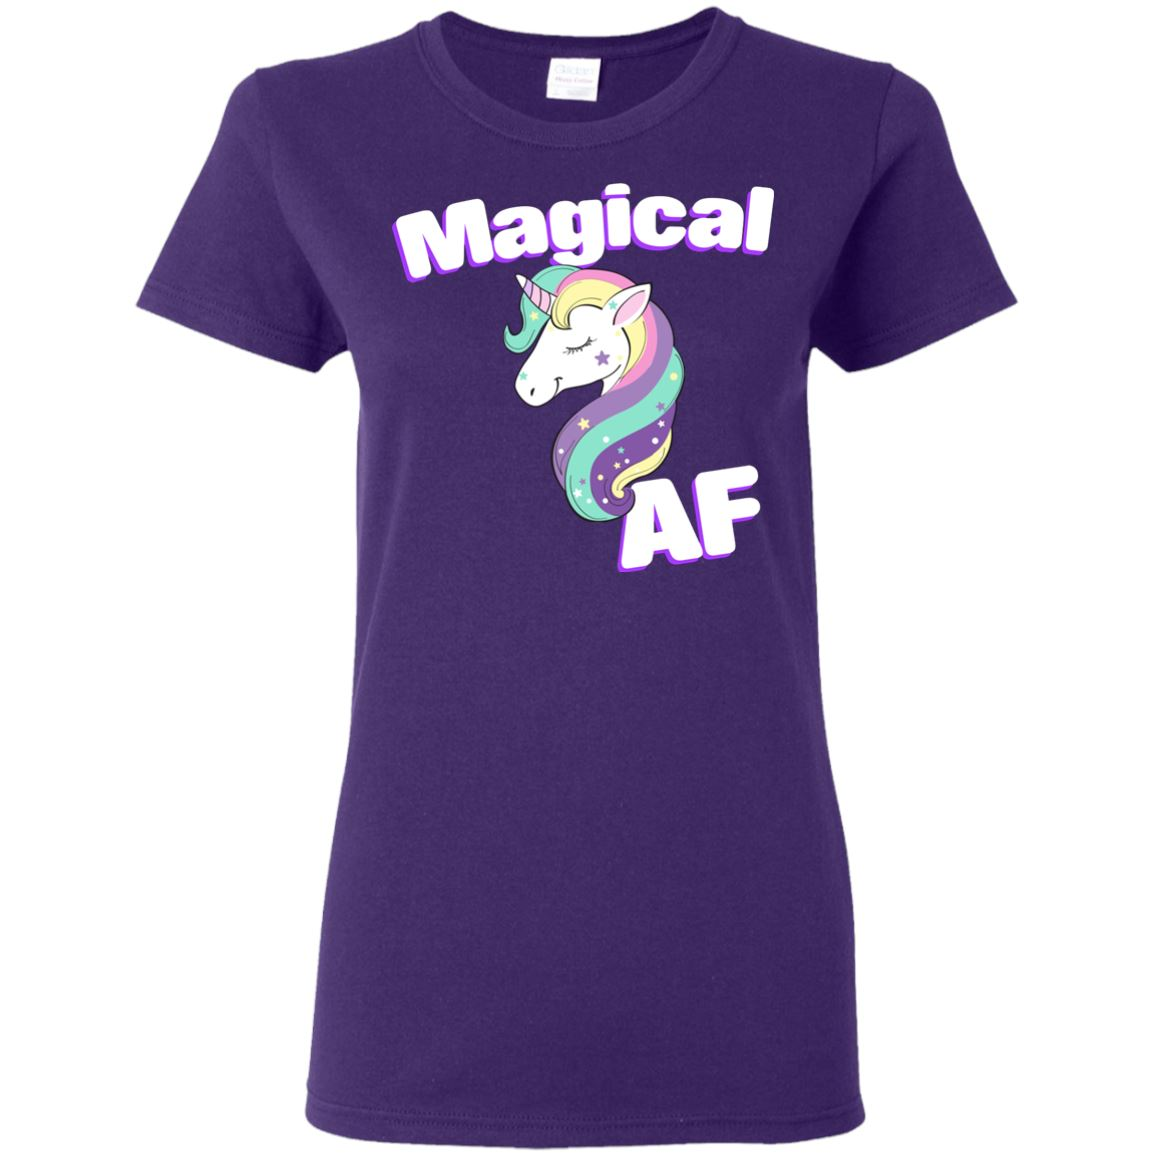 Magical AF Ladies' T-Shirt Apparel Purple S